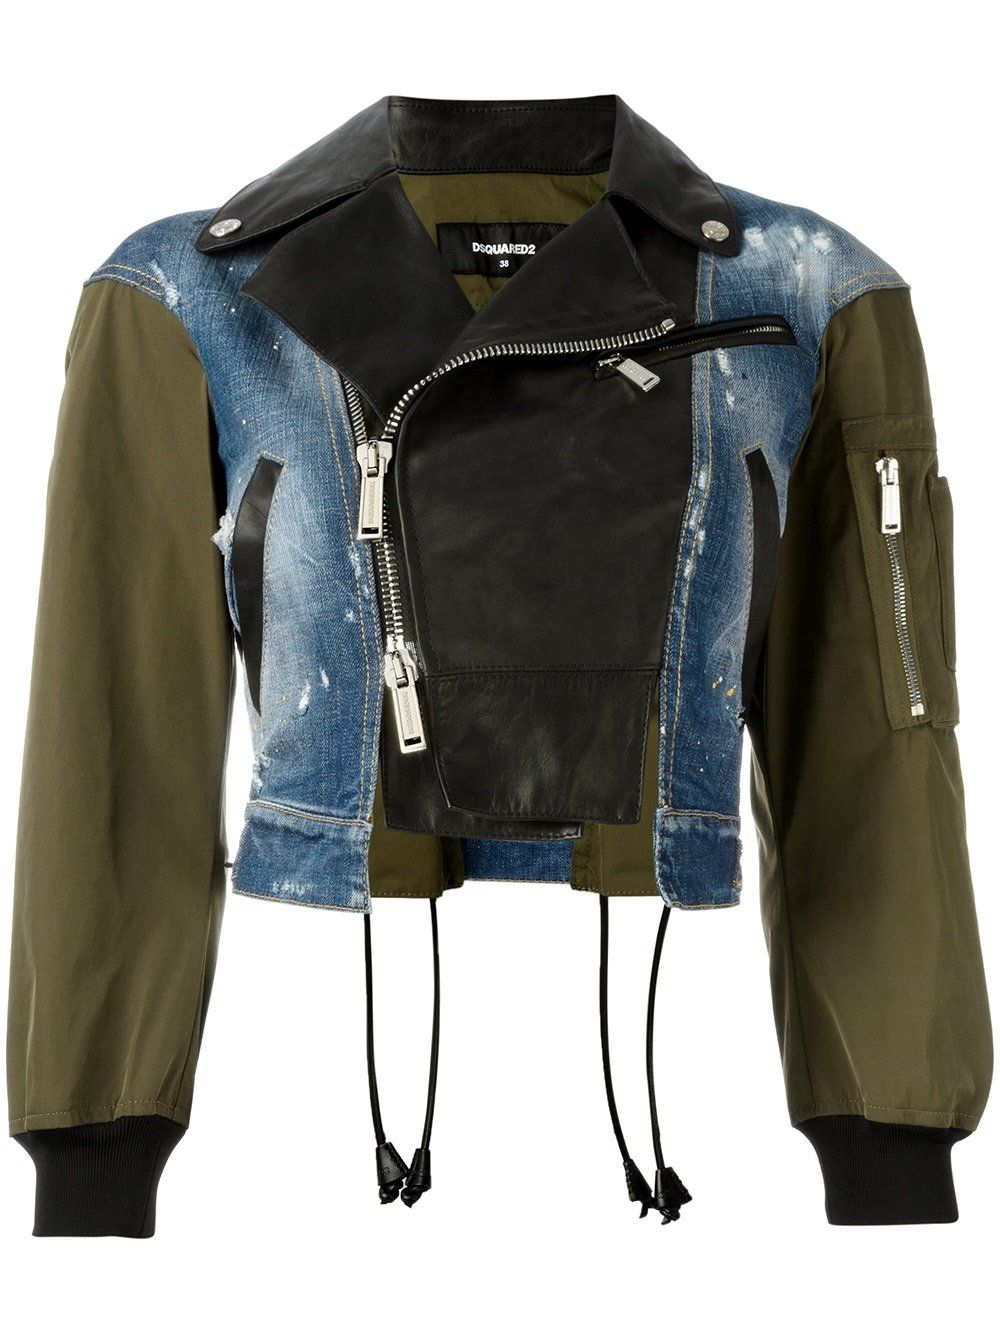 Dsquared2 triple material bomber jacket (With images